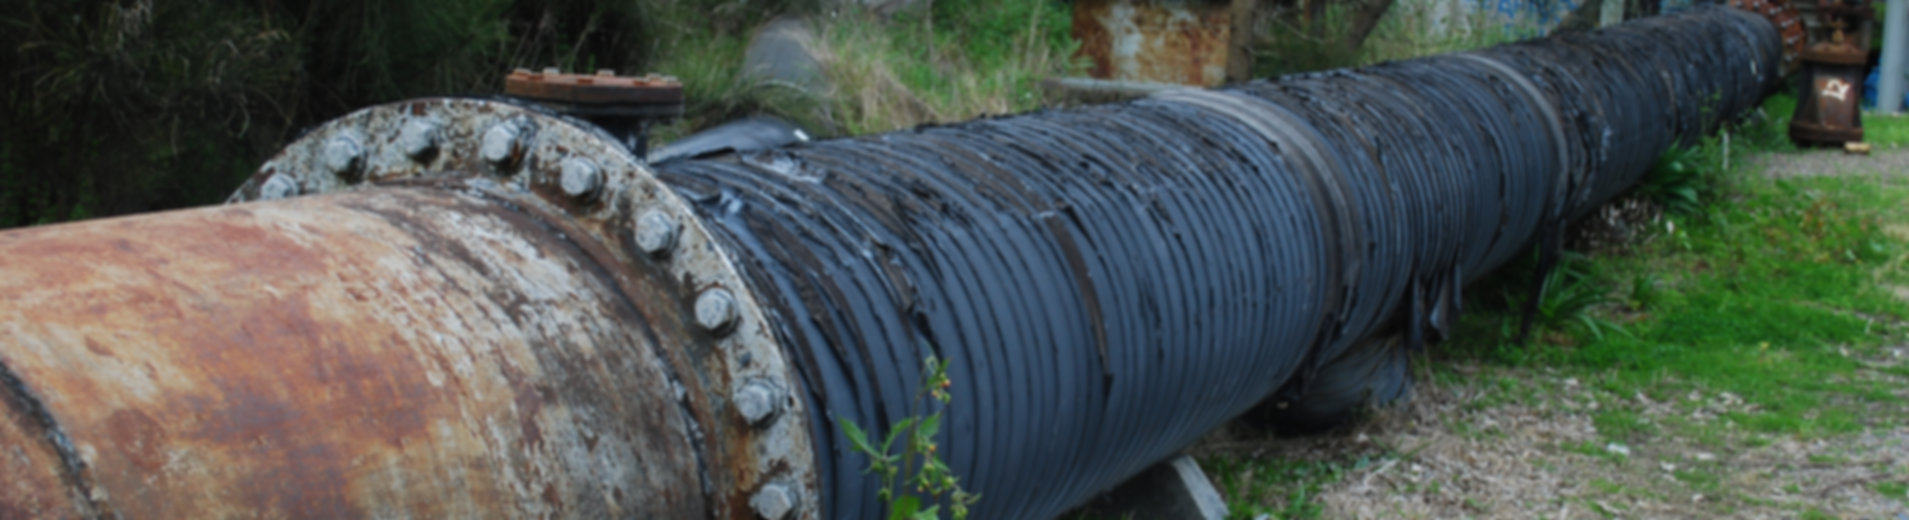 Condition Assessment of Pipelines Through Proper Planning and Design